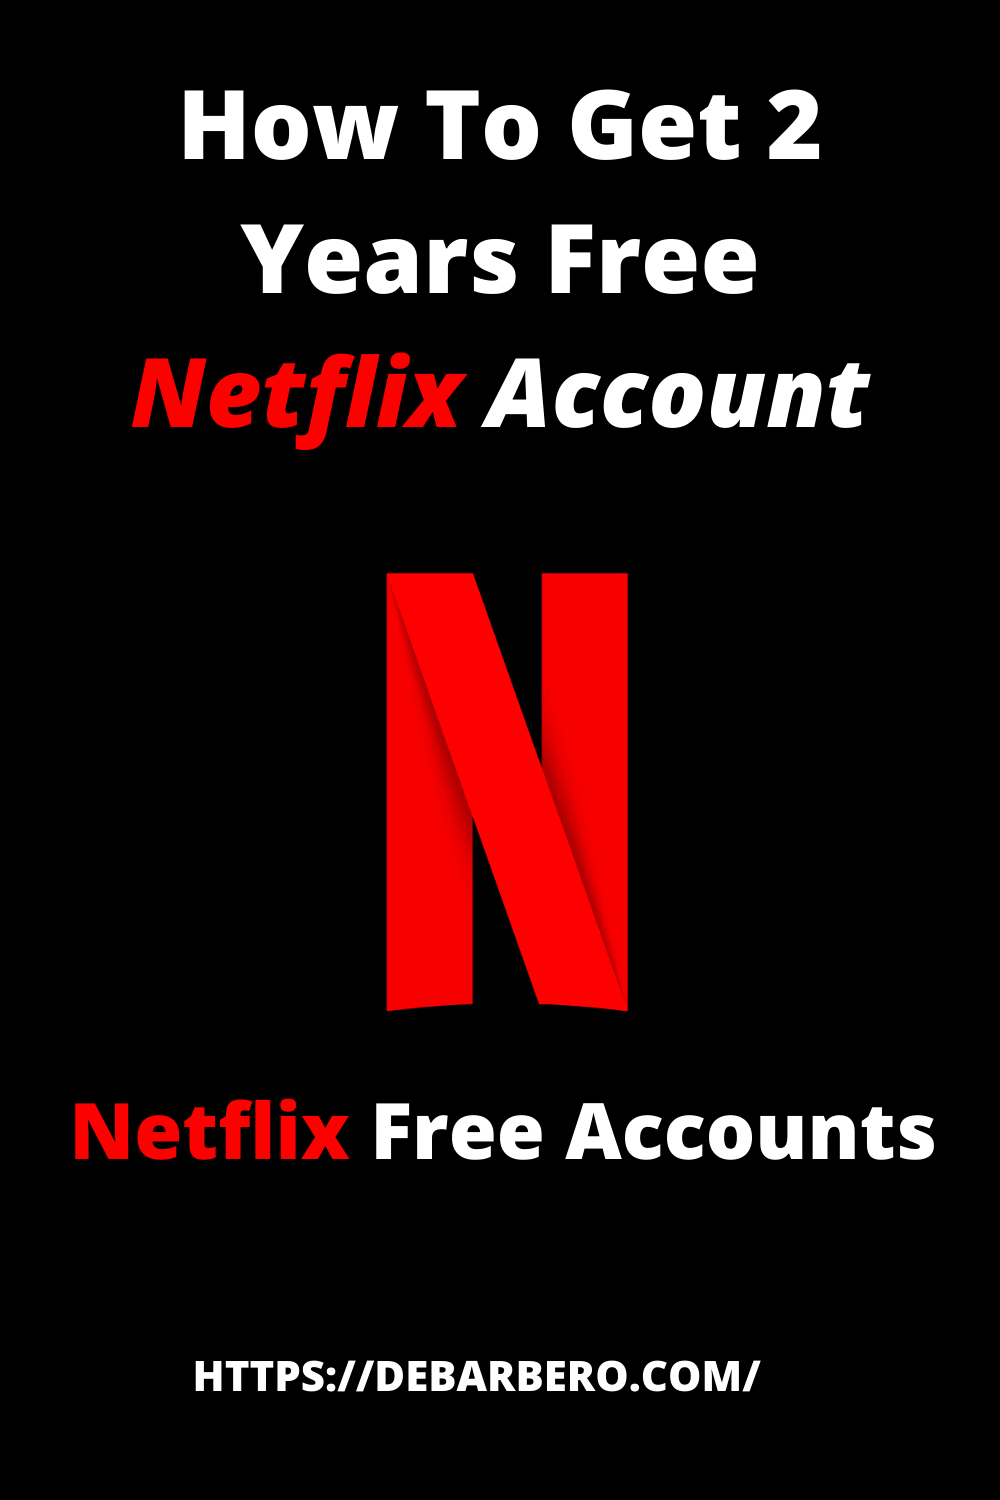 How To Get 2 Years Free Netflix Account